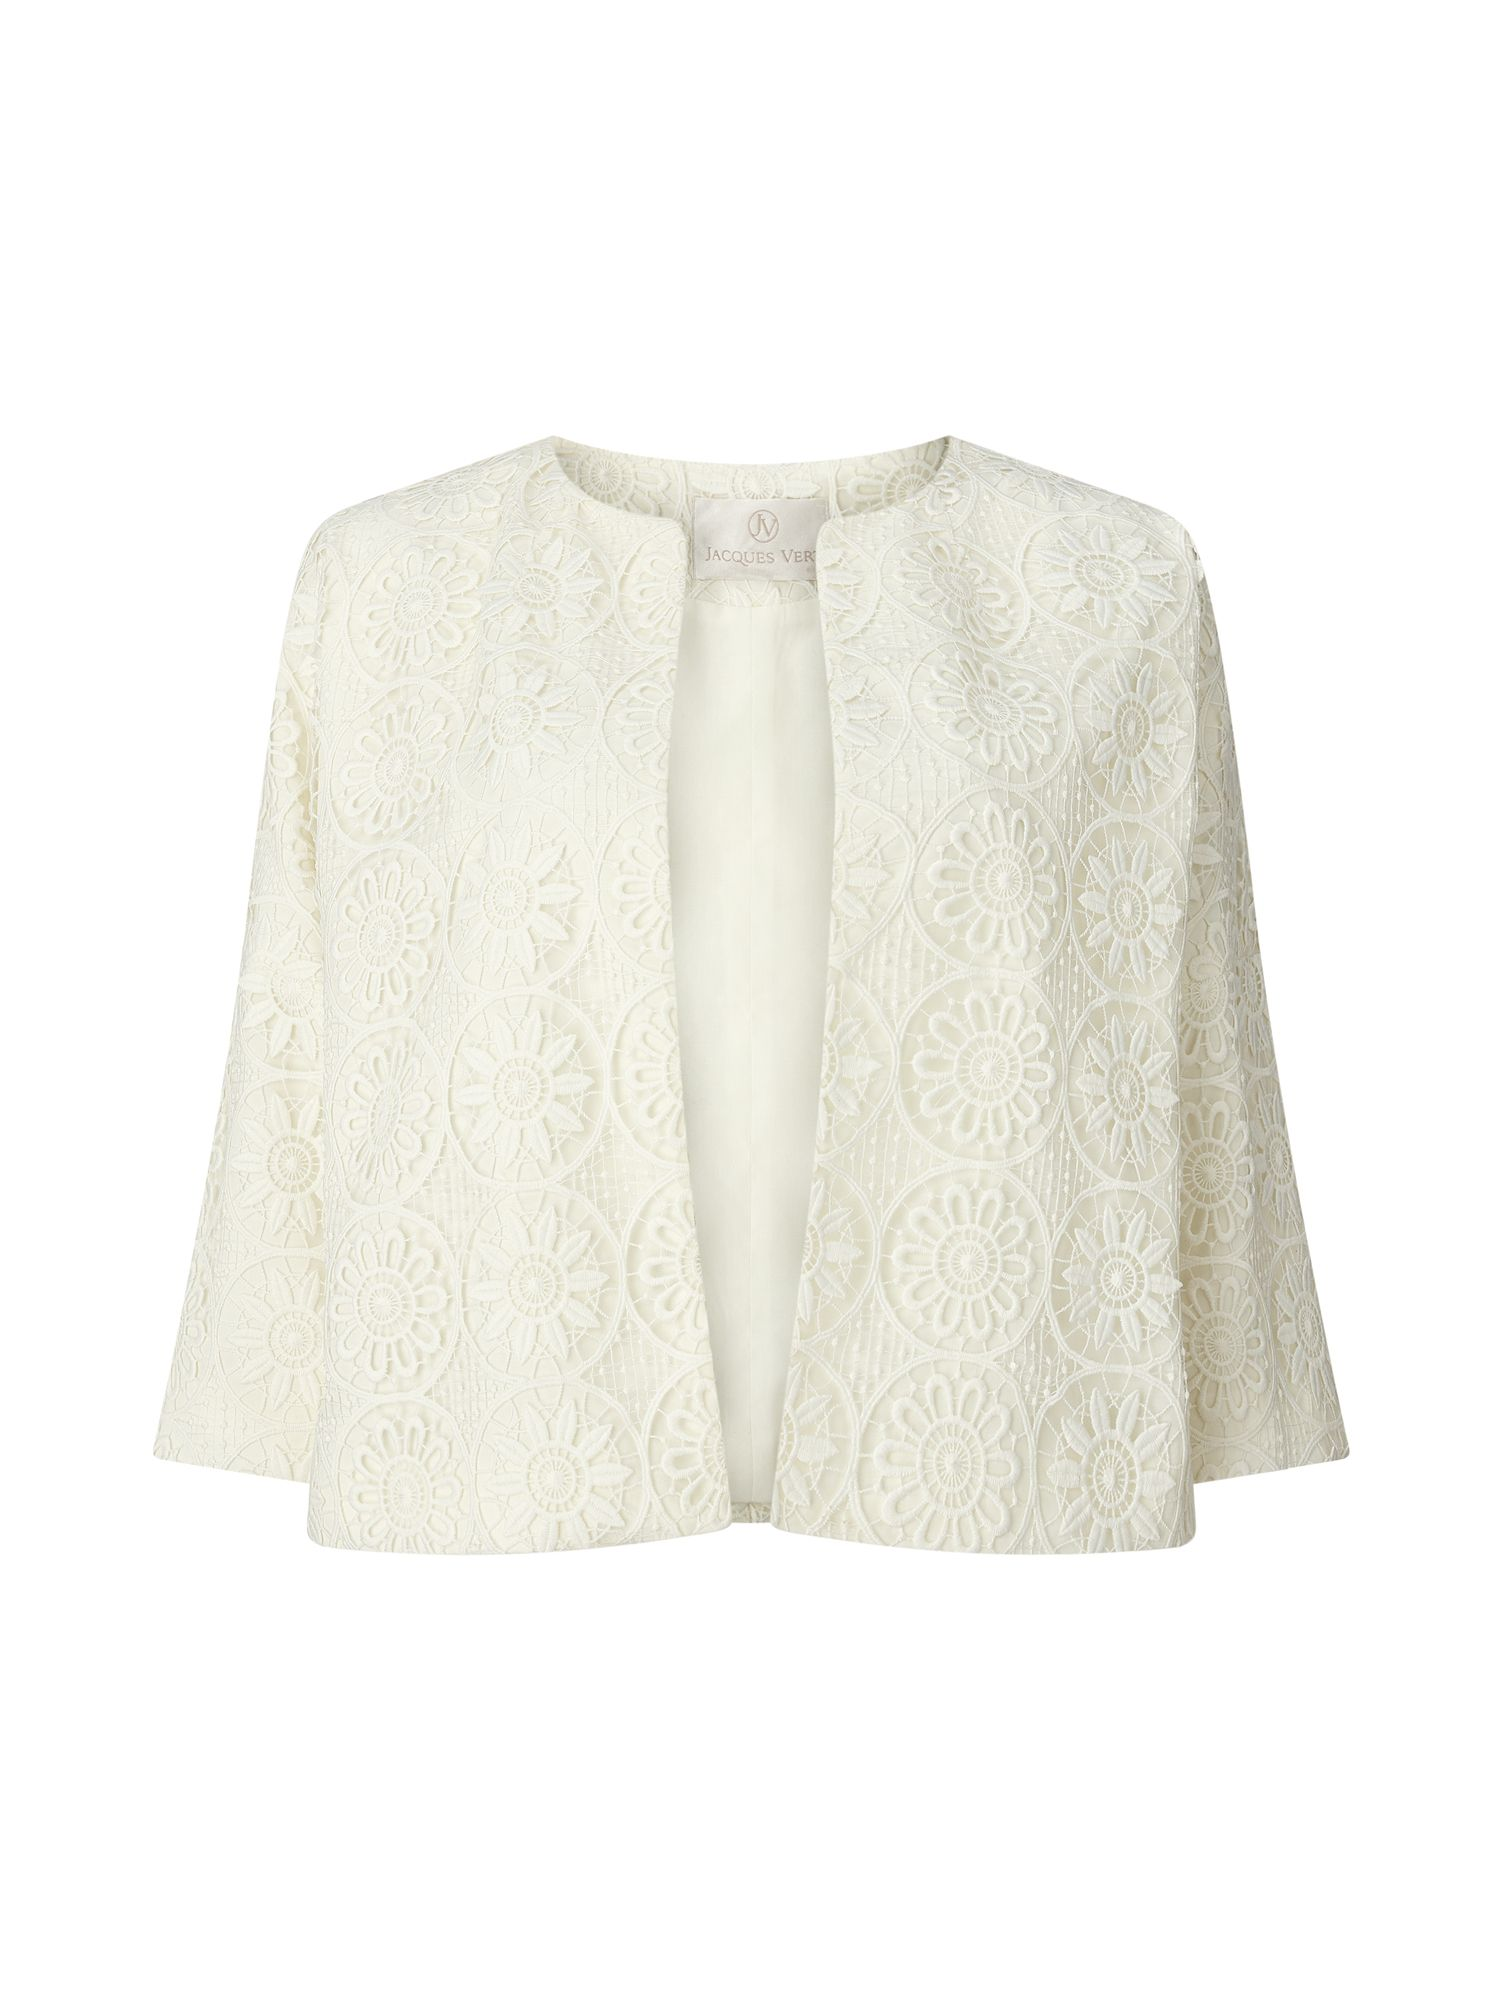 Jacques Vert Lace Jacket, Neutral